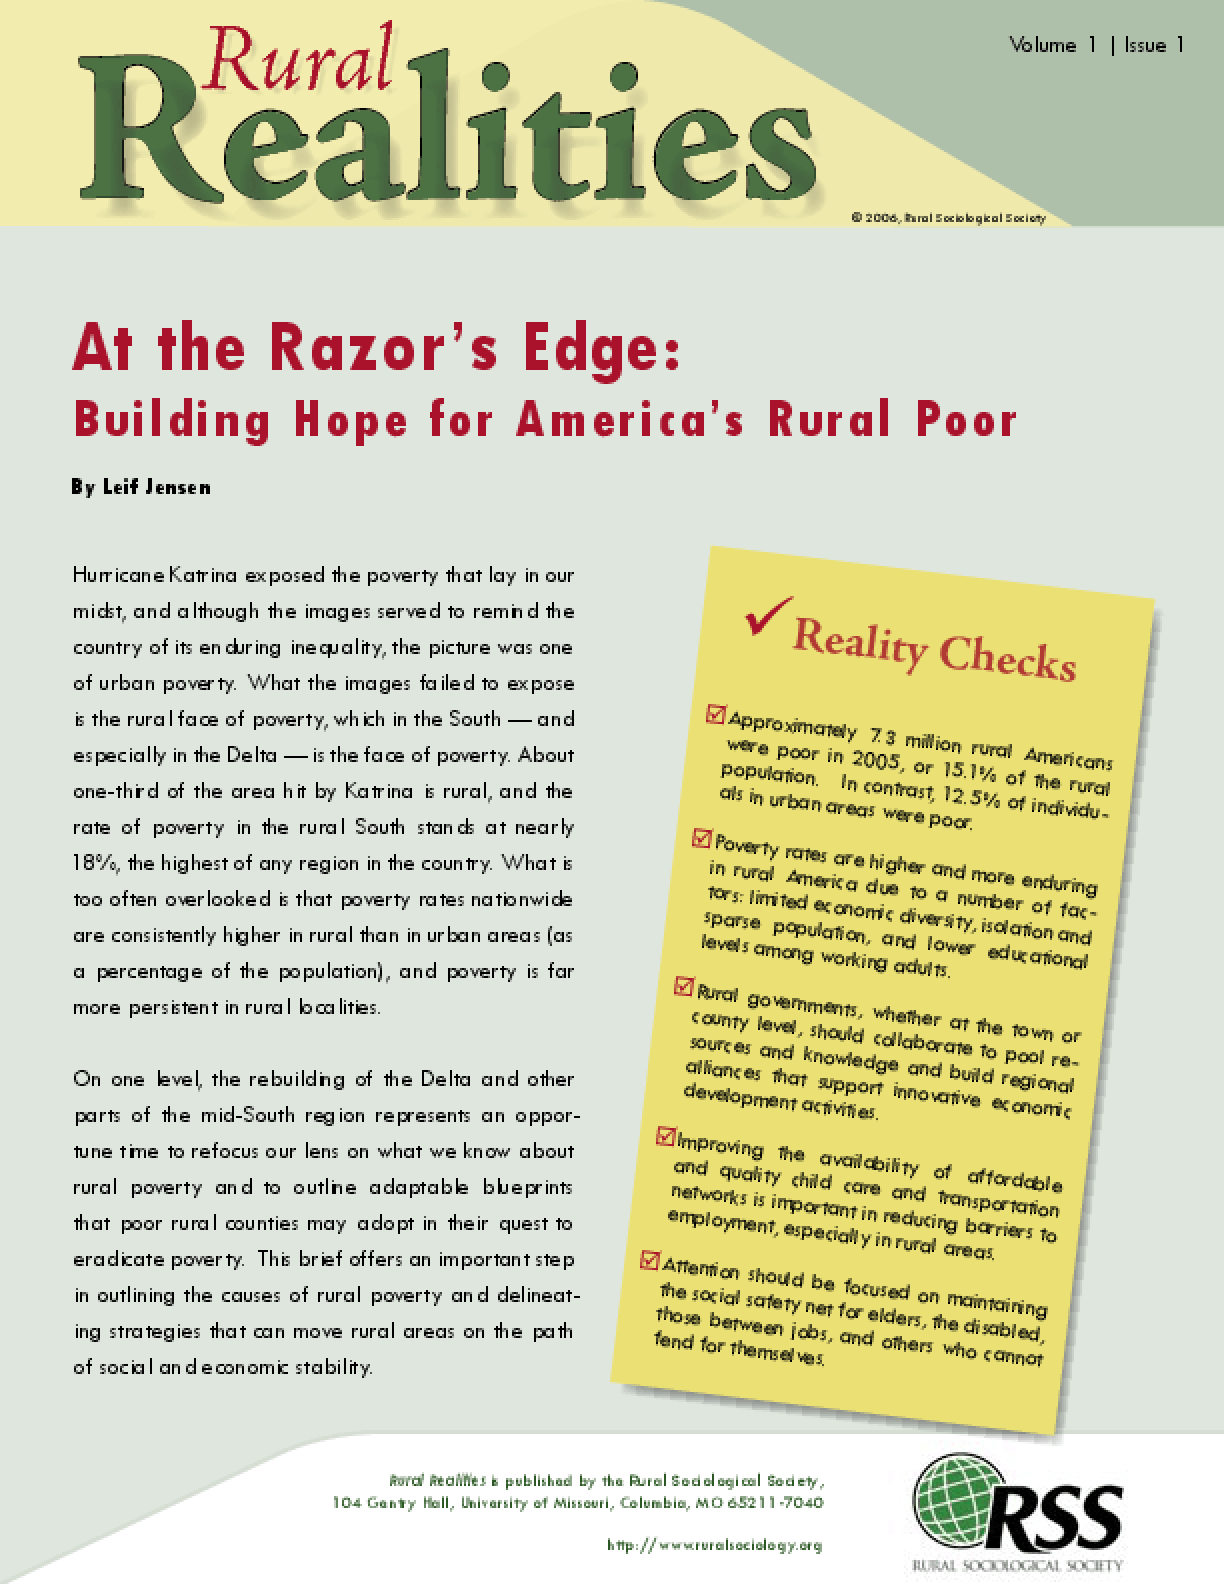 At the Razor's Edge: Building Hope for America's Rural Poor